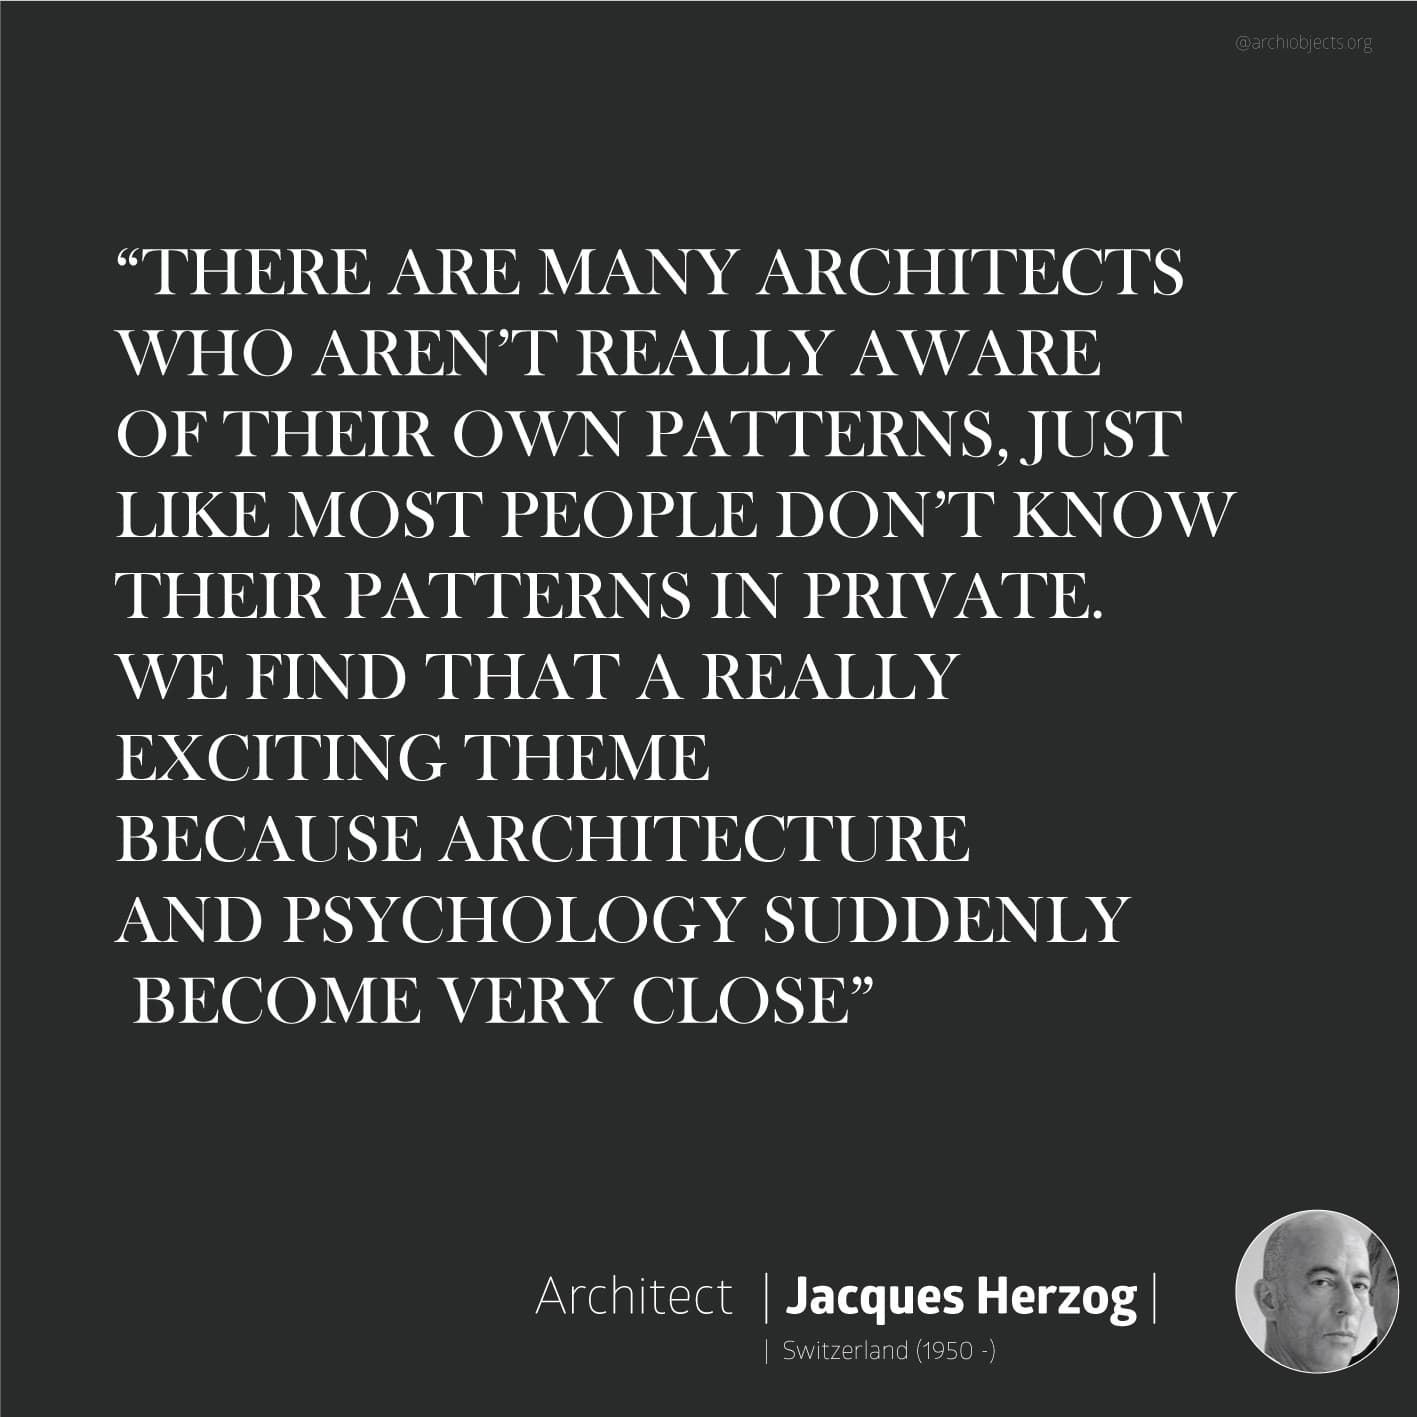 herzog quote Architectural Quotes - Worth spreading Architects' voice